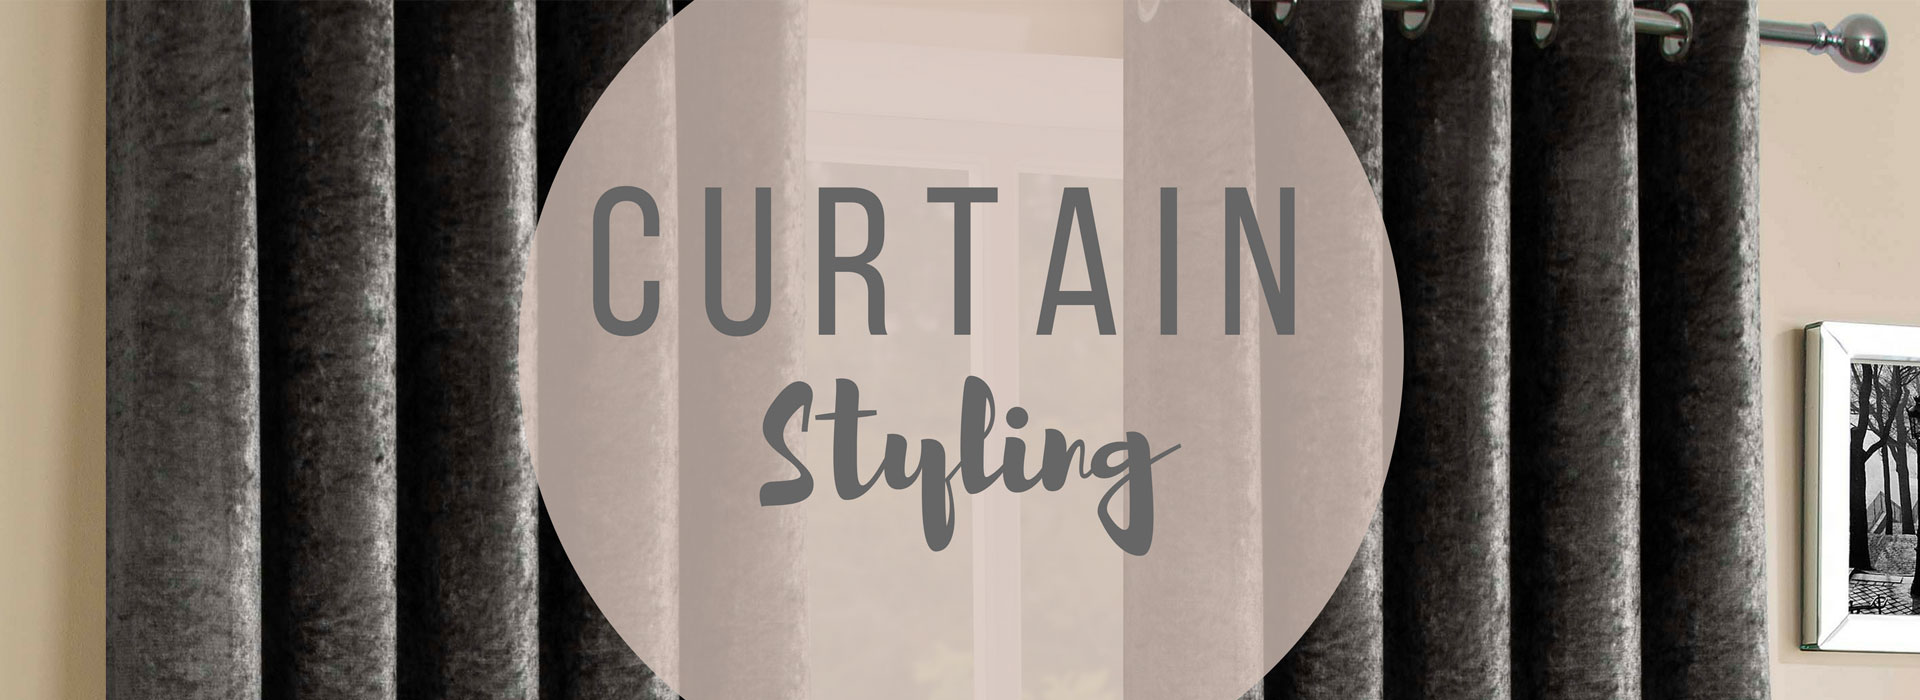 Curtain Styling Homescapes